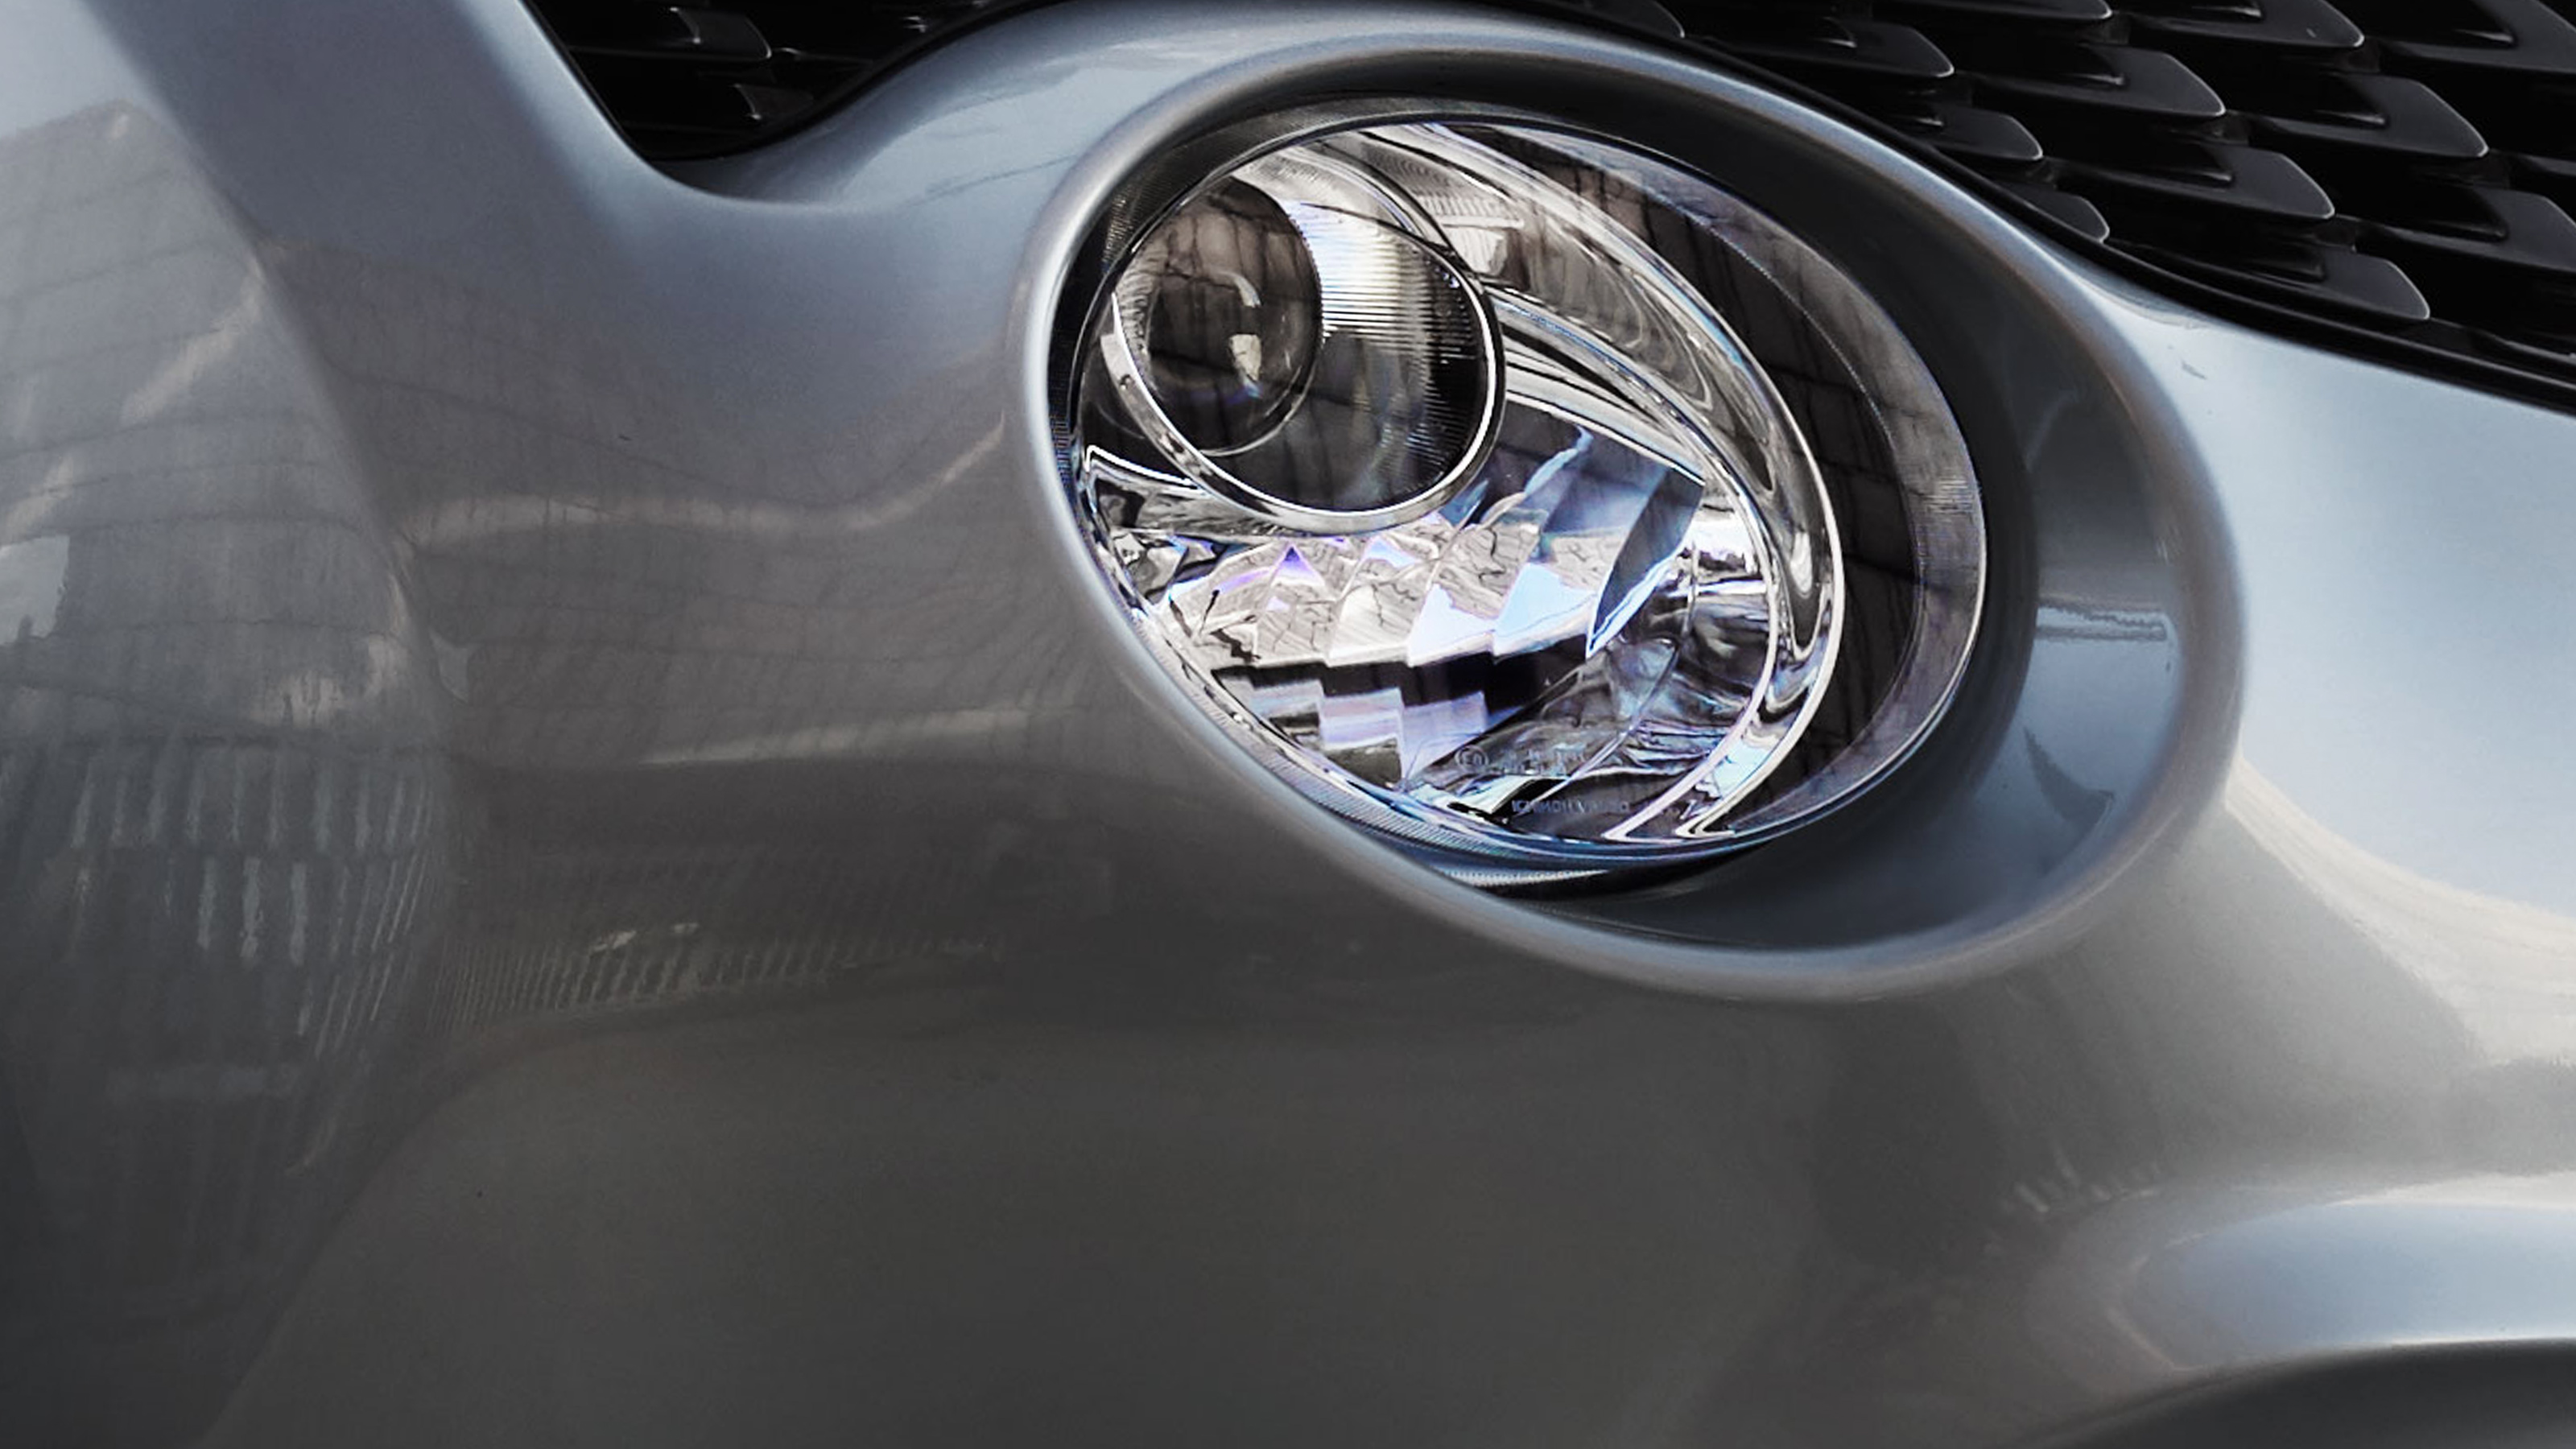 2018 Nissan JUKE headlamp detail shot